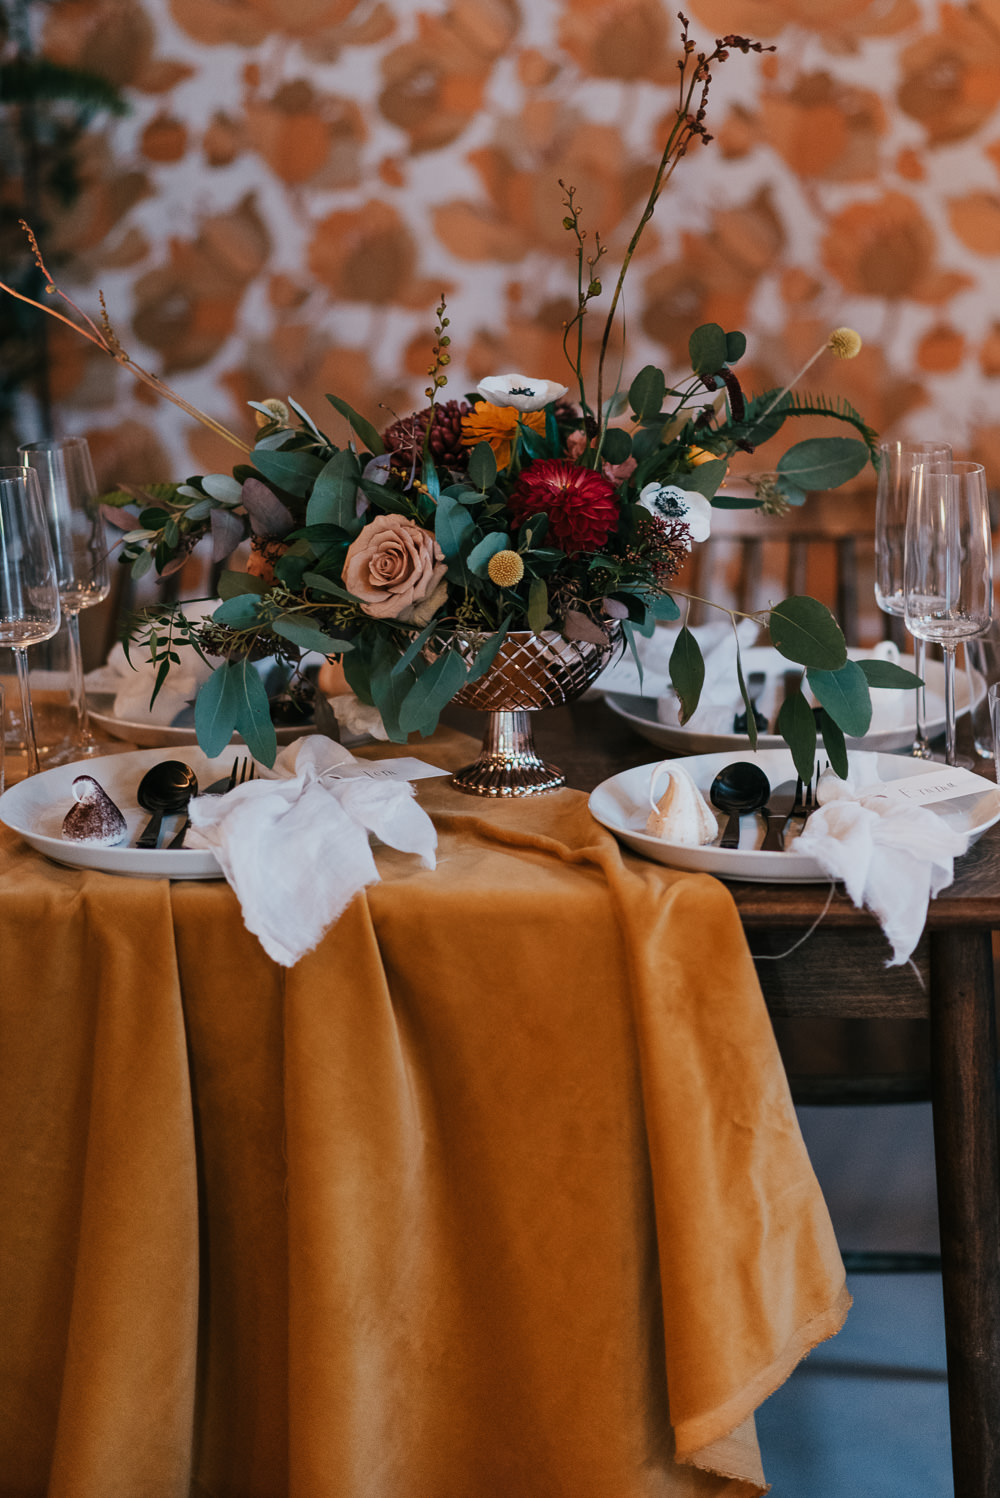 Tablescape Table Decor Backdrop Wallpaper Mustard Orange Floral Flowers Decor Velvet Cloth Runner Candles 1970 Retro Mid Century Wedding Ideas Laura Martha Photography